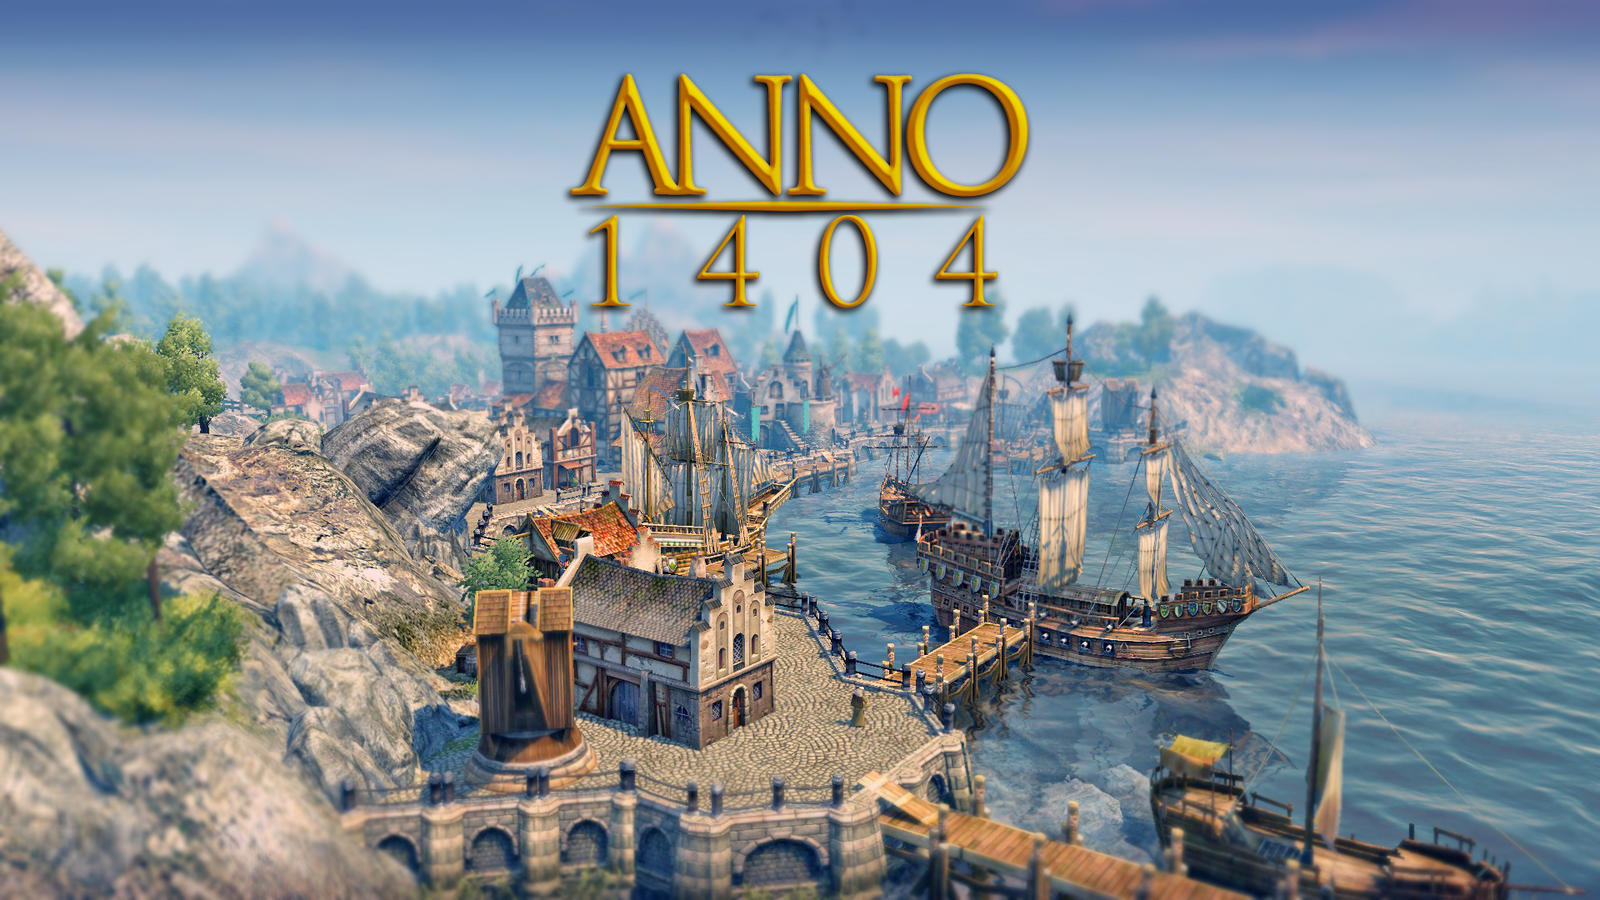 anno venice wallpaper Facebook Cover timeline photo banner for fb